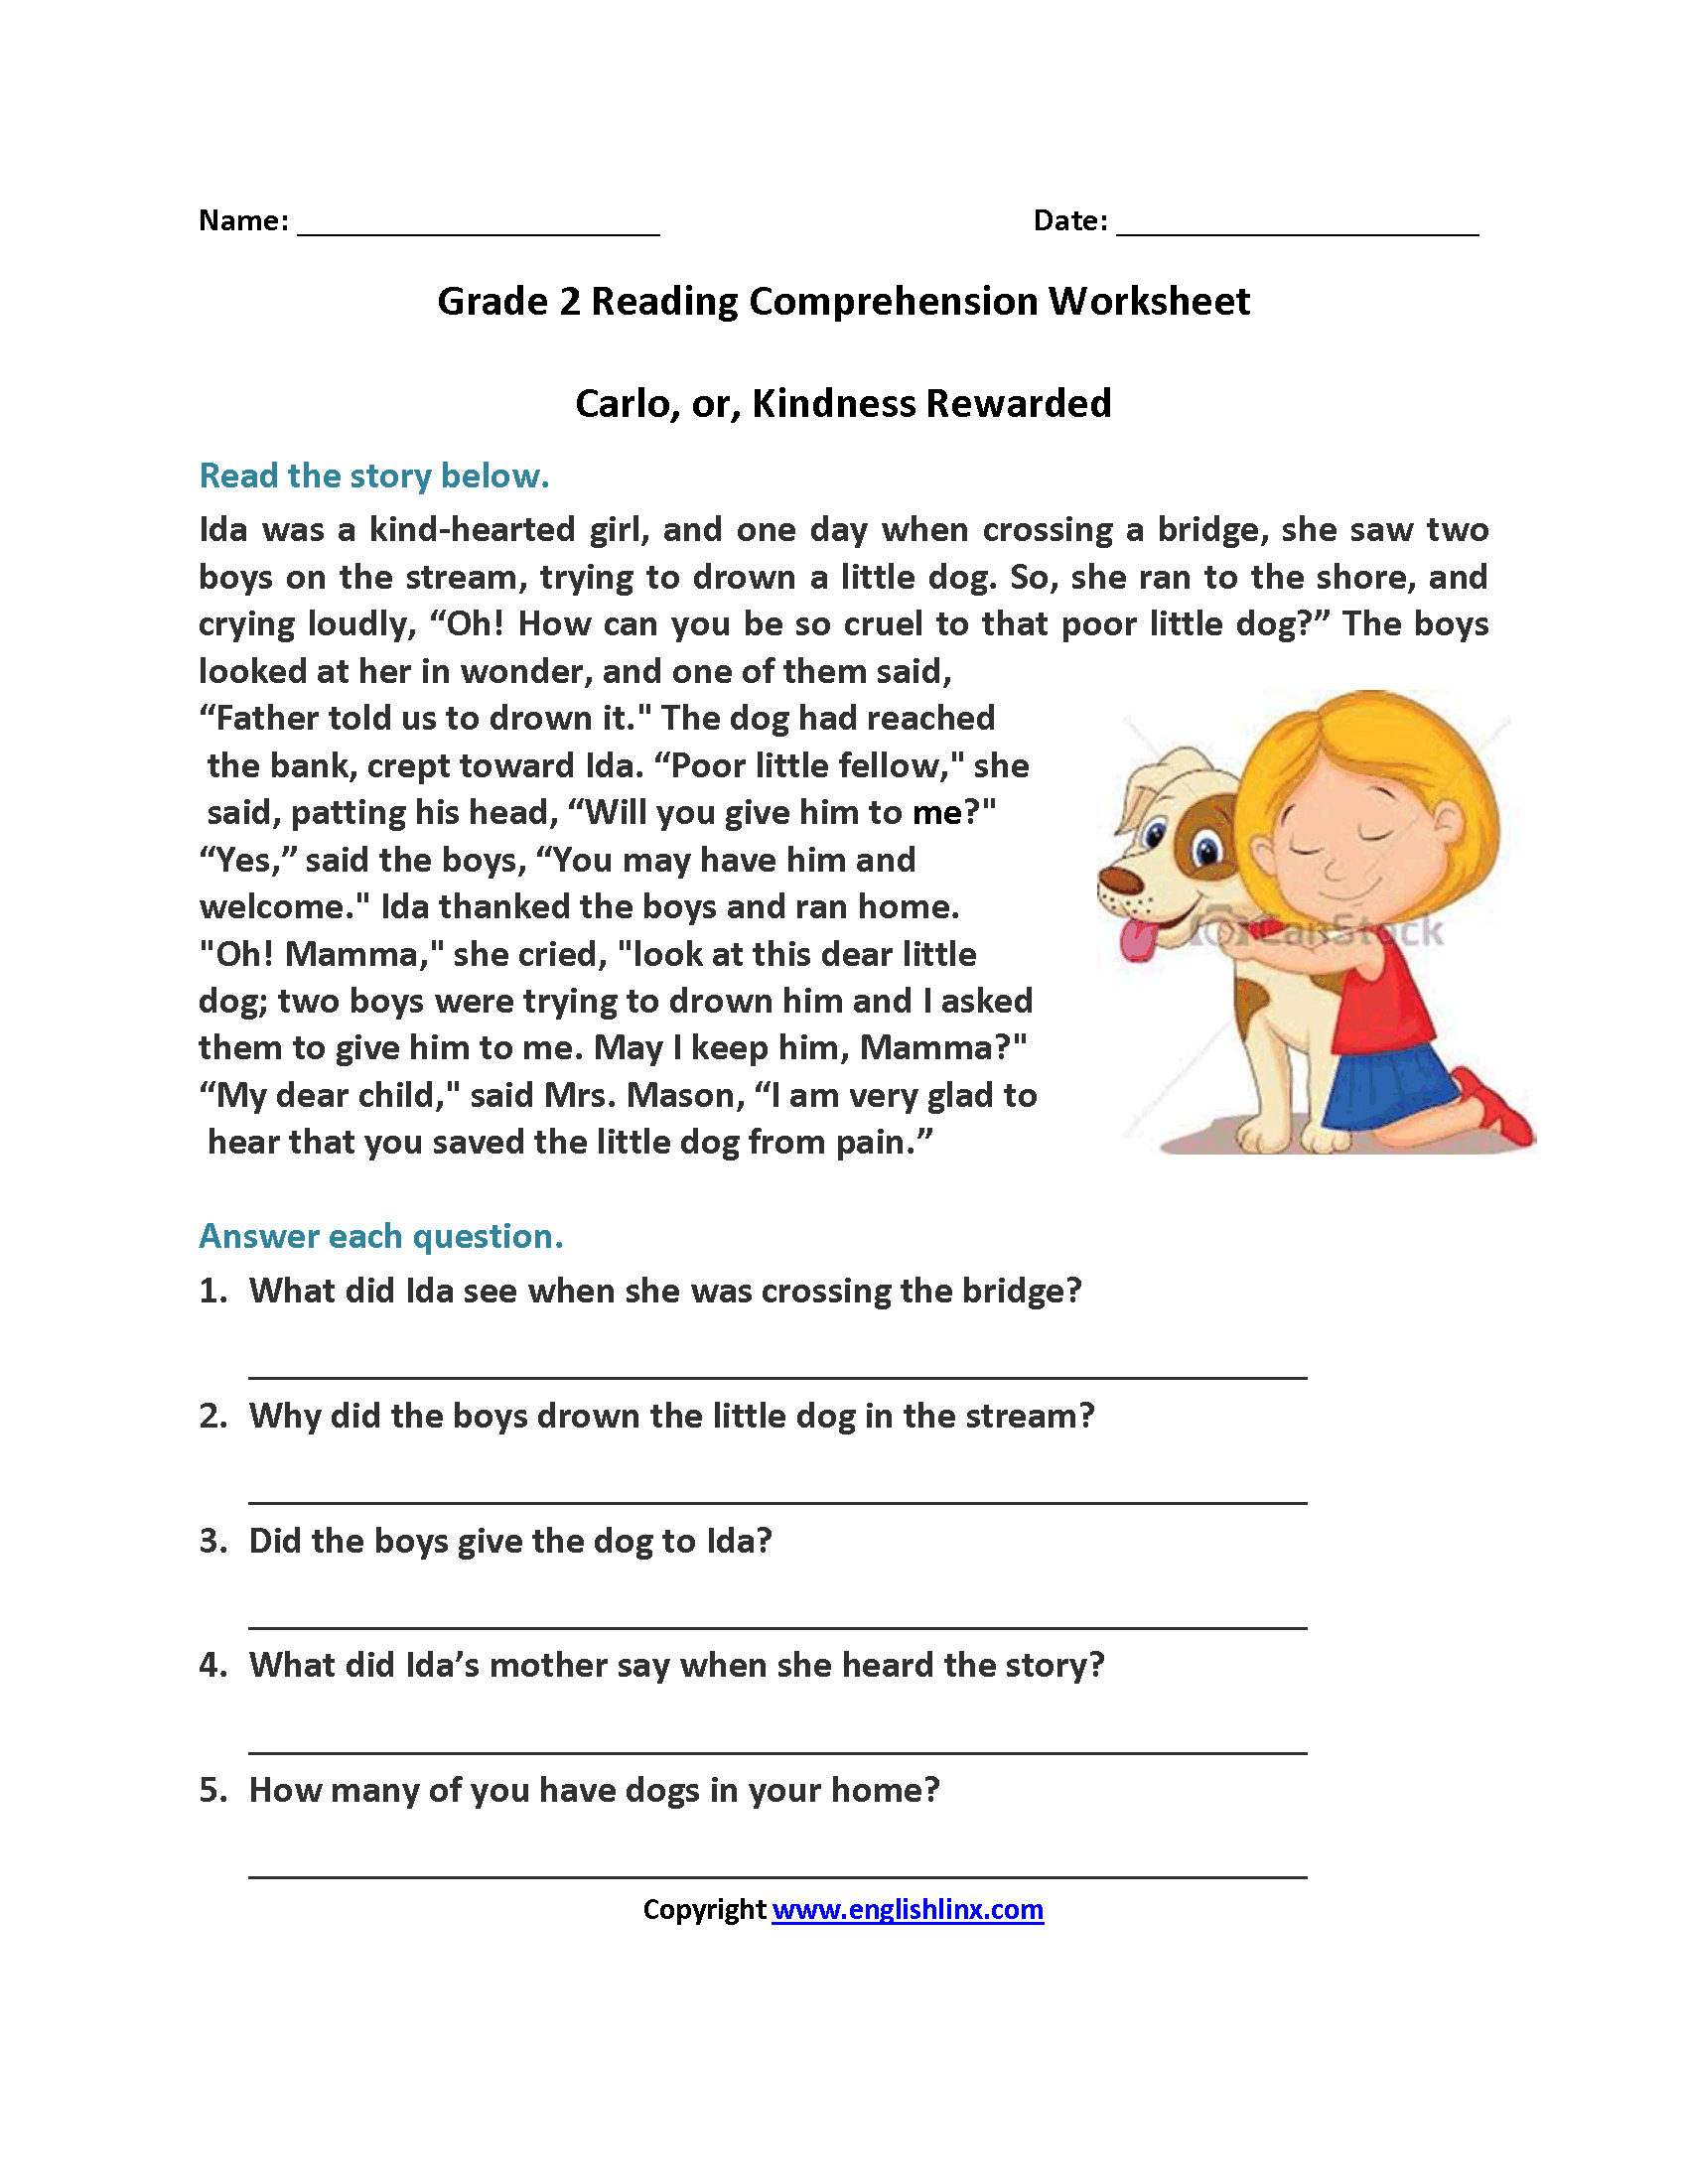 Carlo Or Kindness Rewarded Second Grade Reading Worksheets   Reading - Free Printable Short Stories With Comprehension Questions